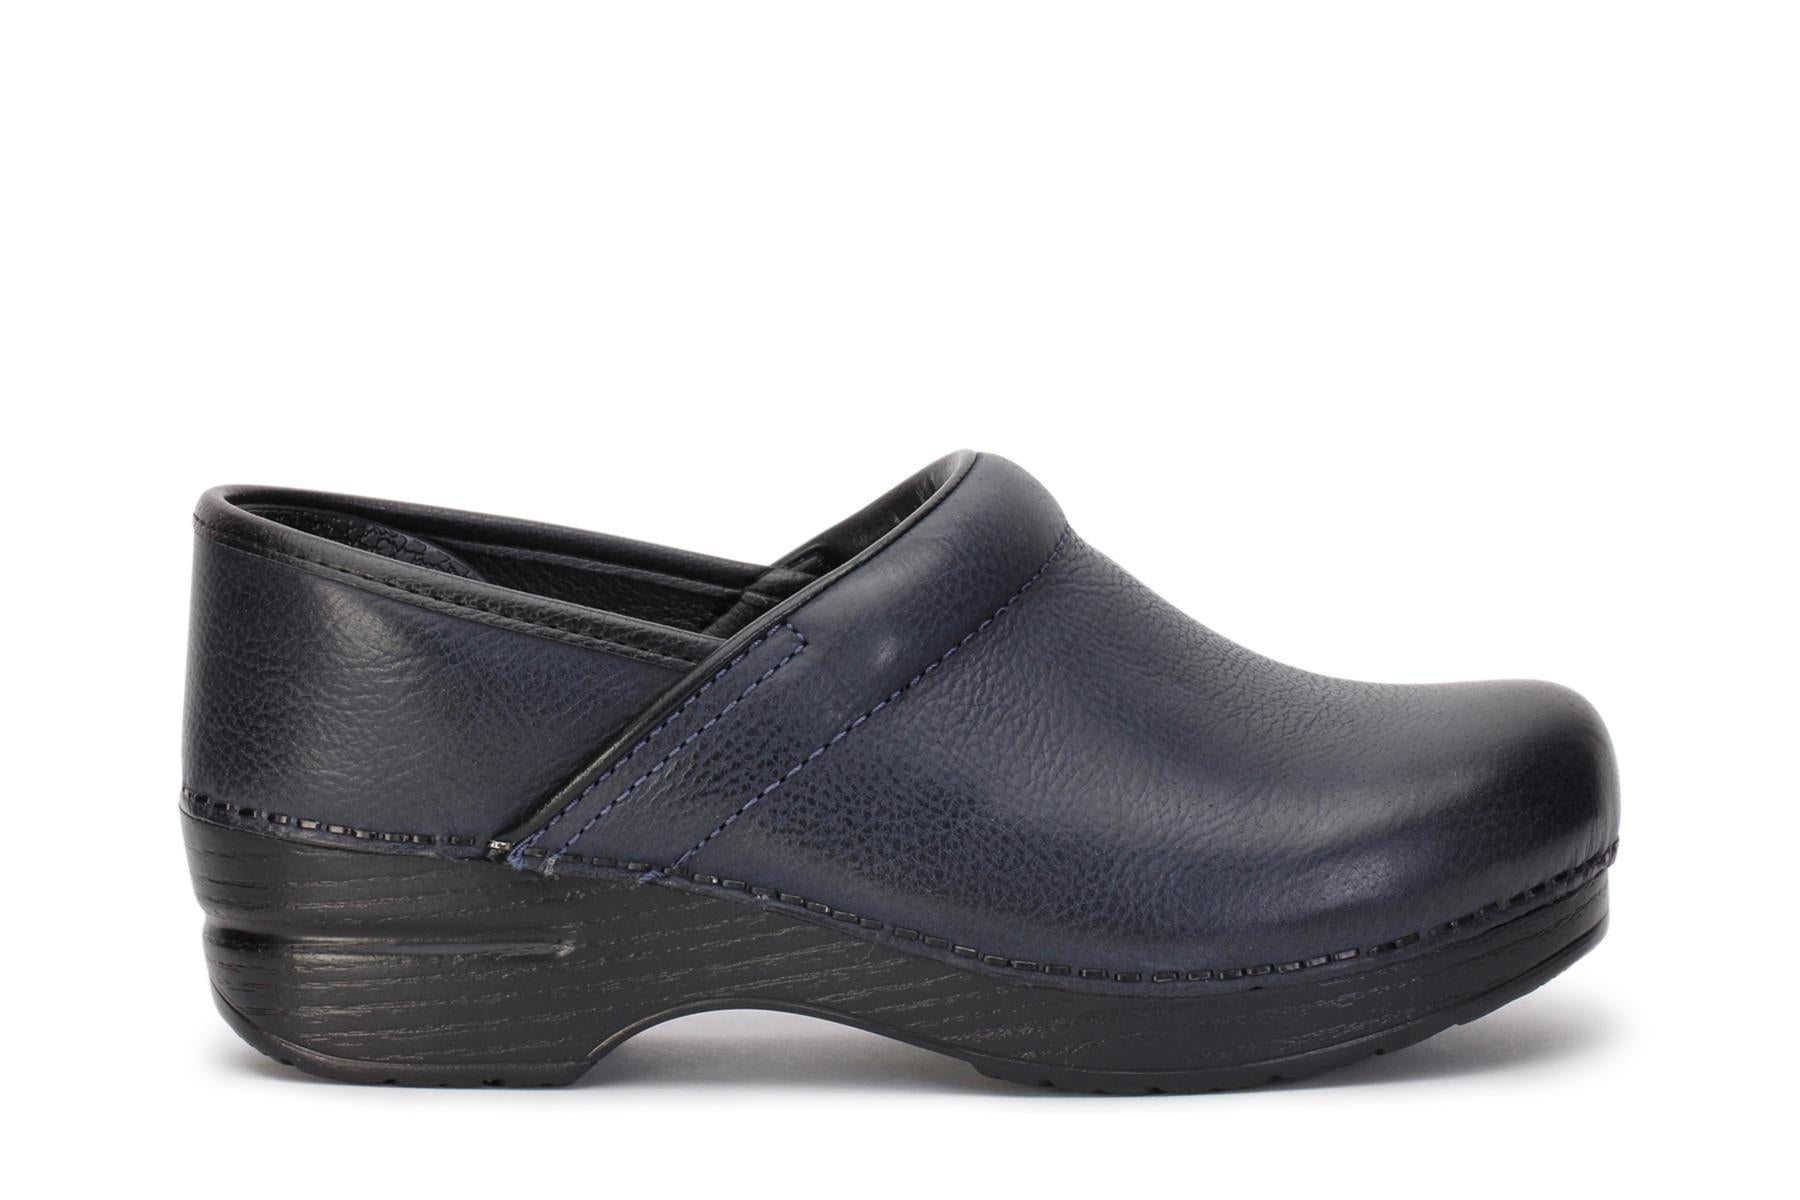 Professional Burnished Dansko Clog Shoes